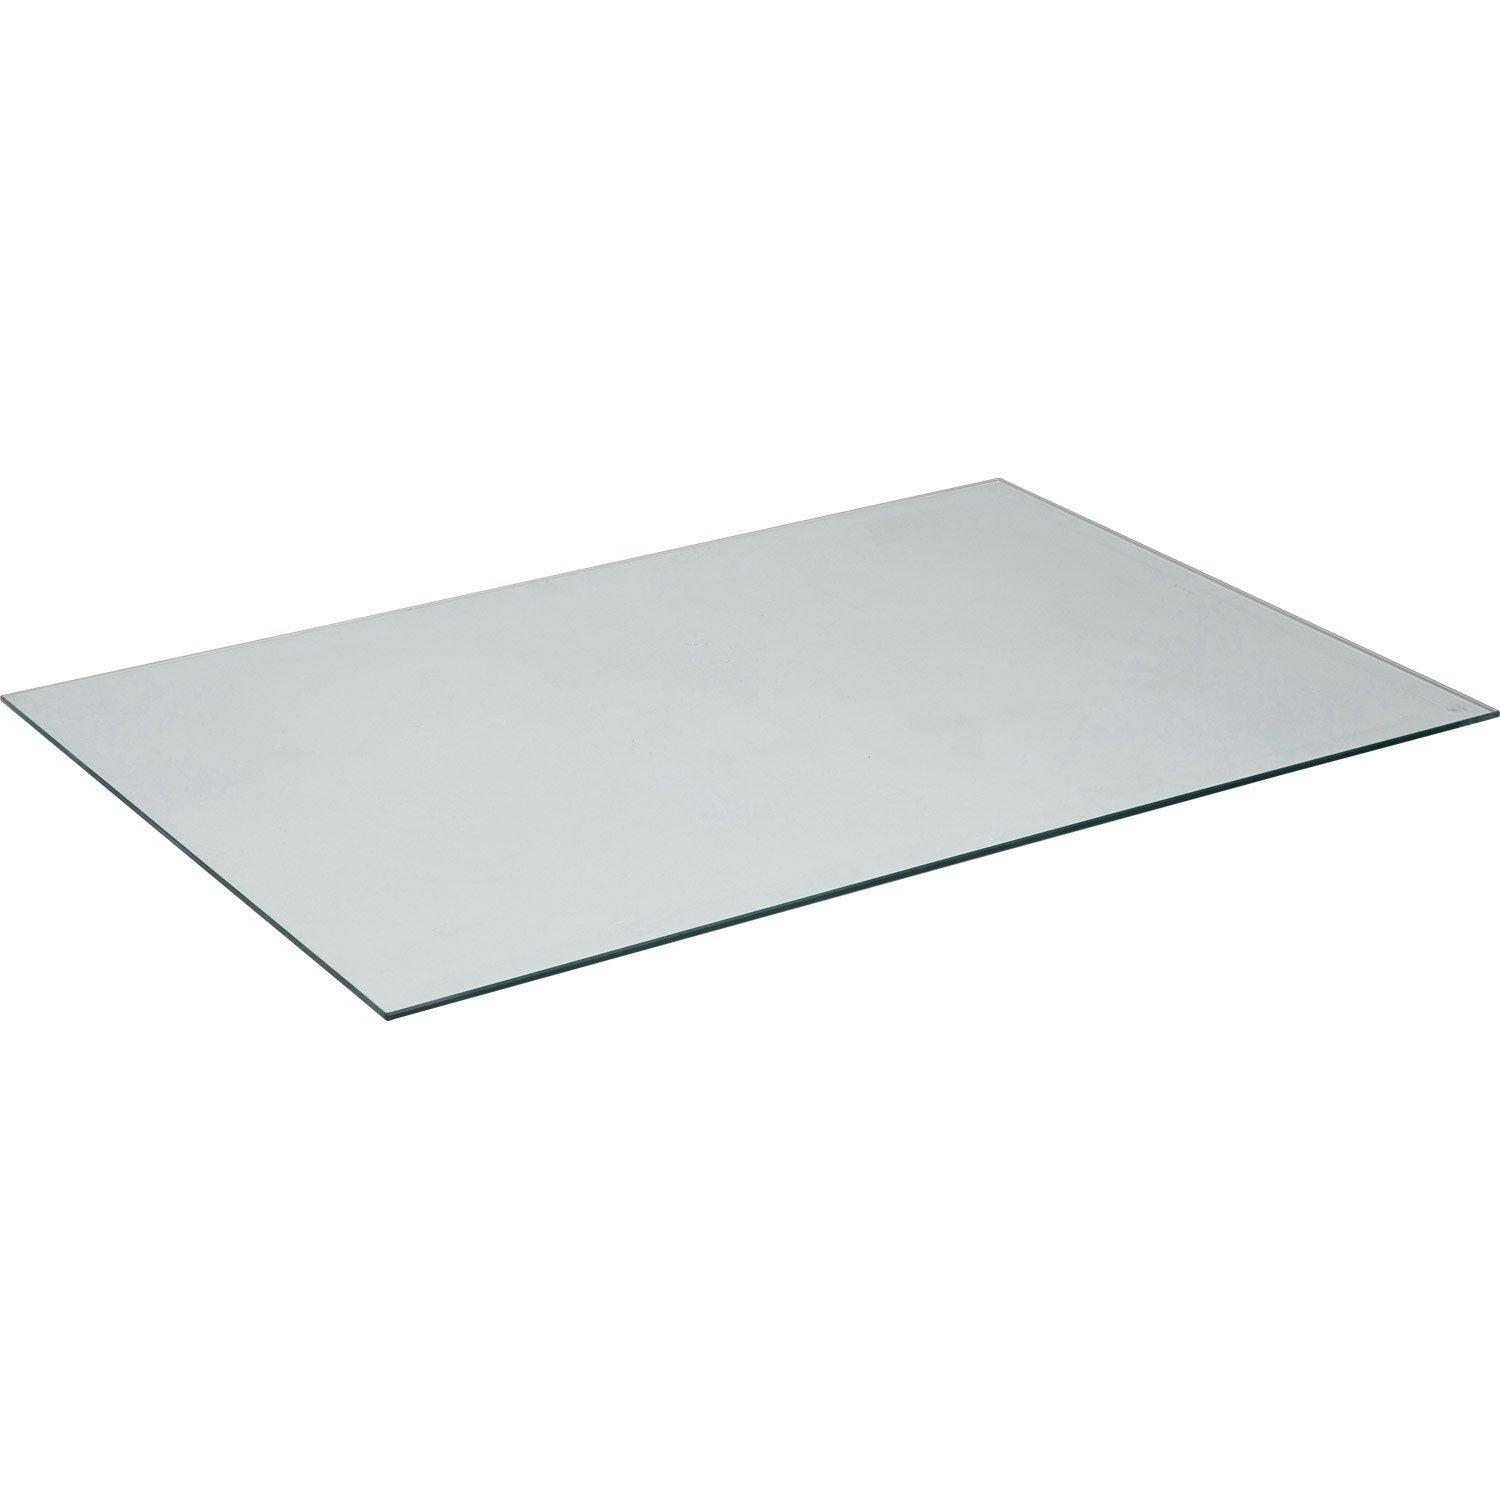 plateau de table verre x cm x ep 8 mm leroy merlin